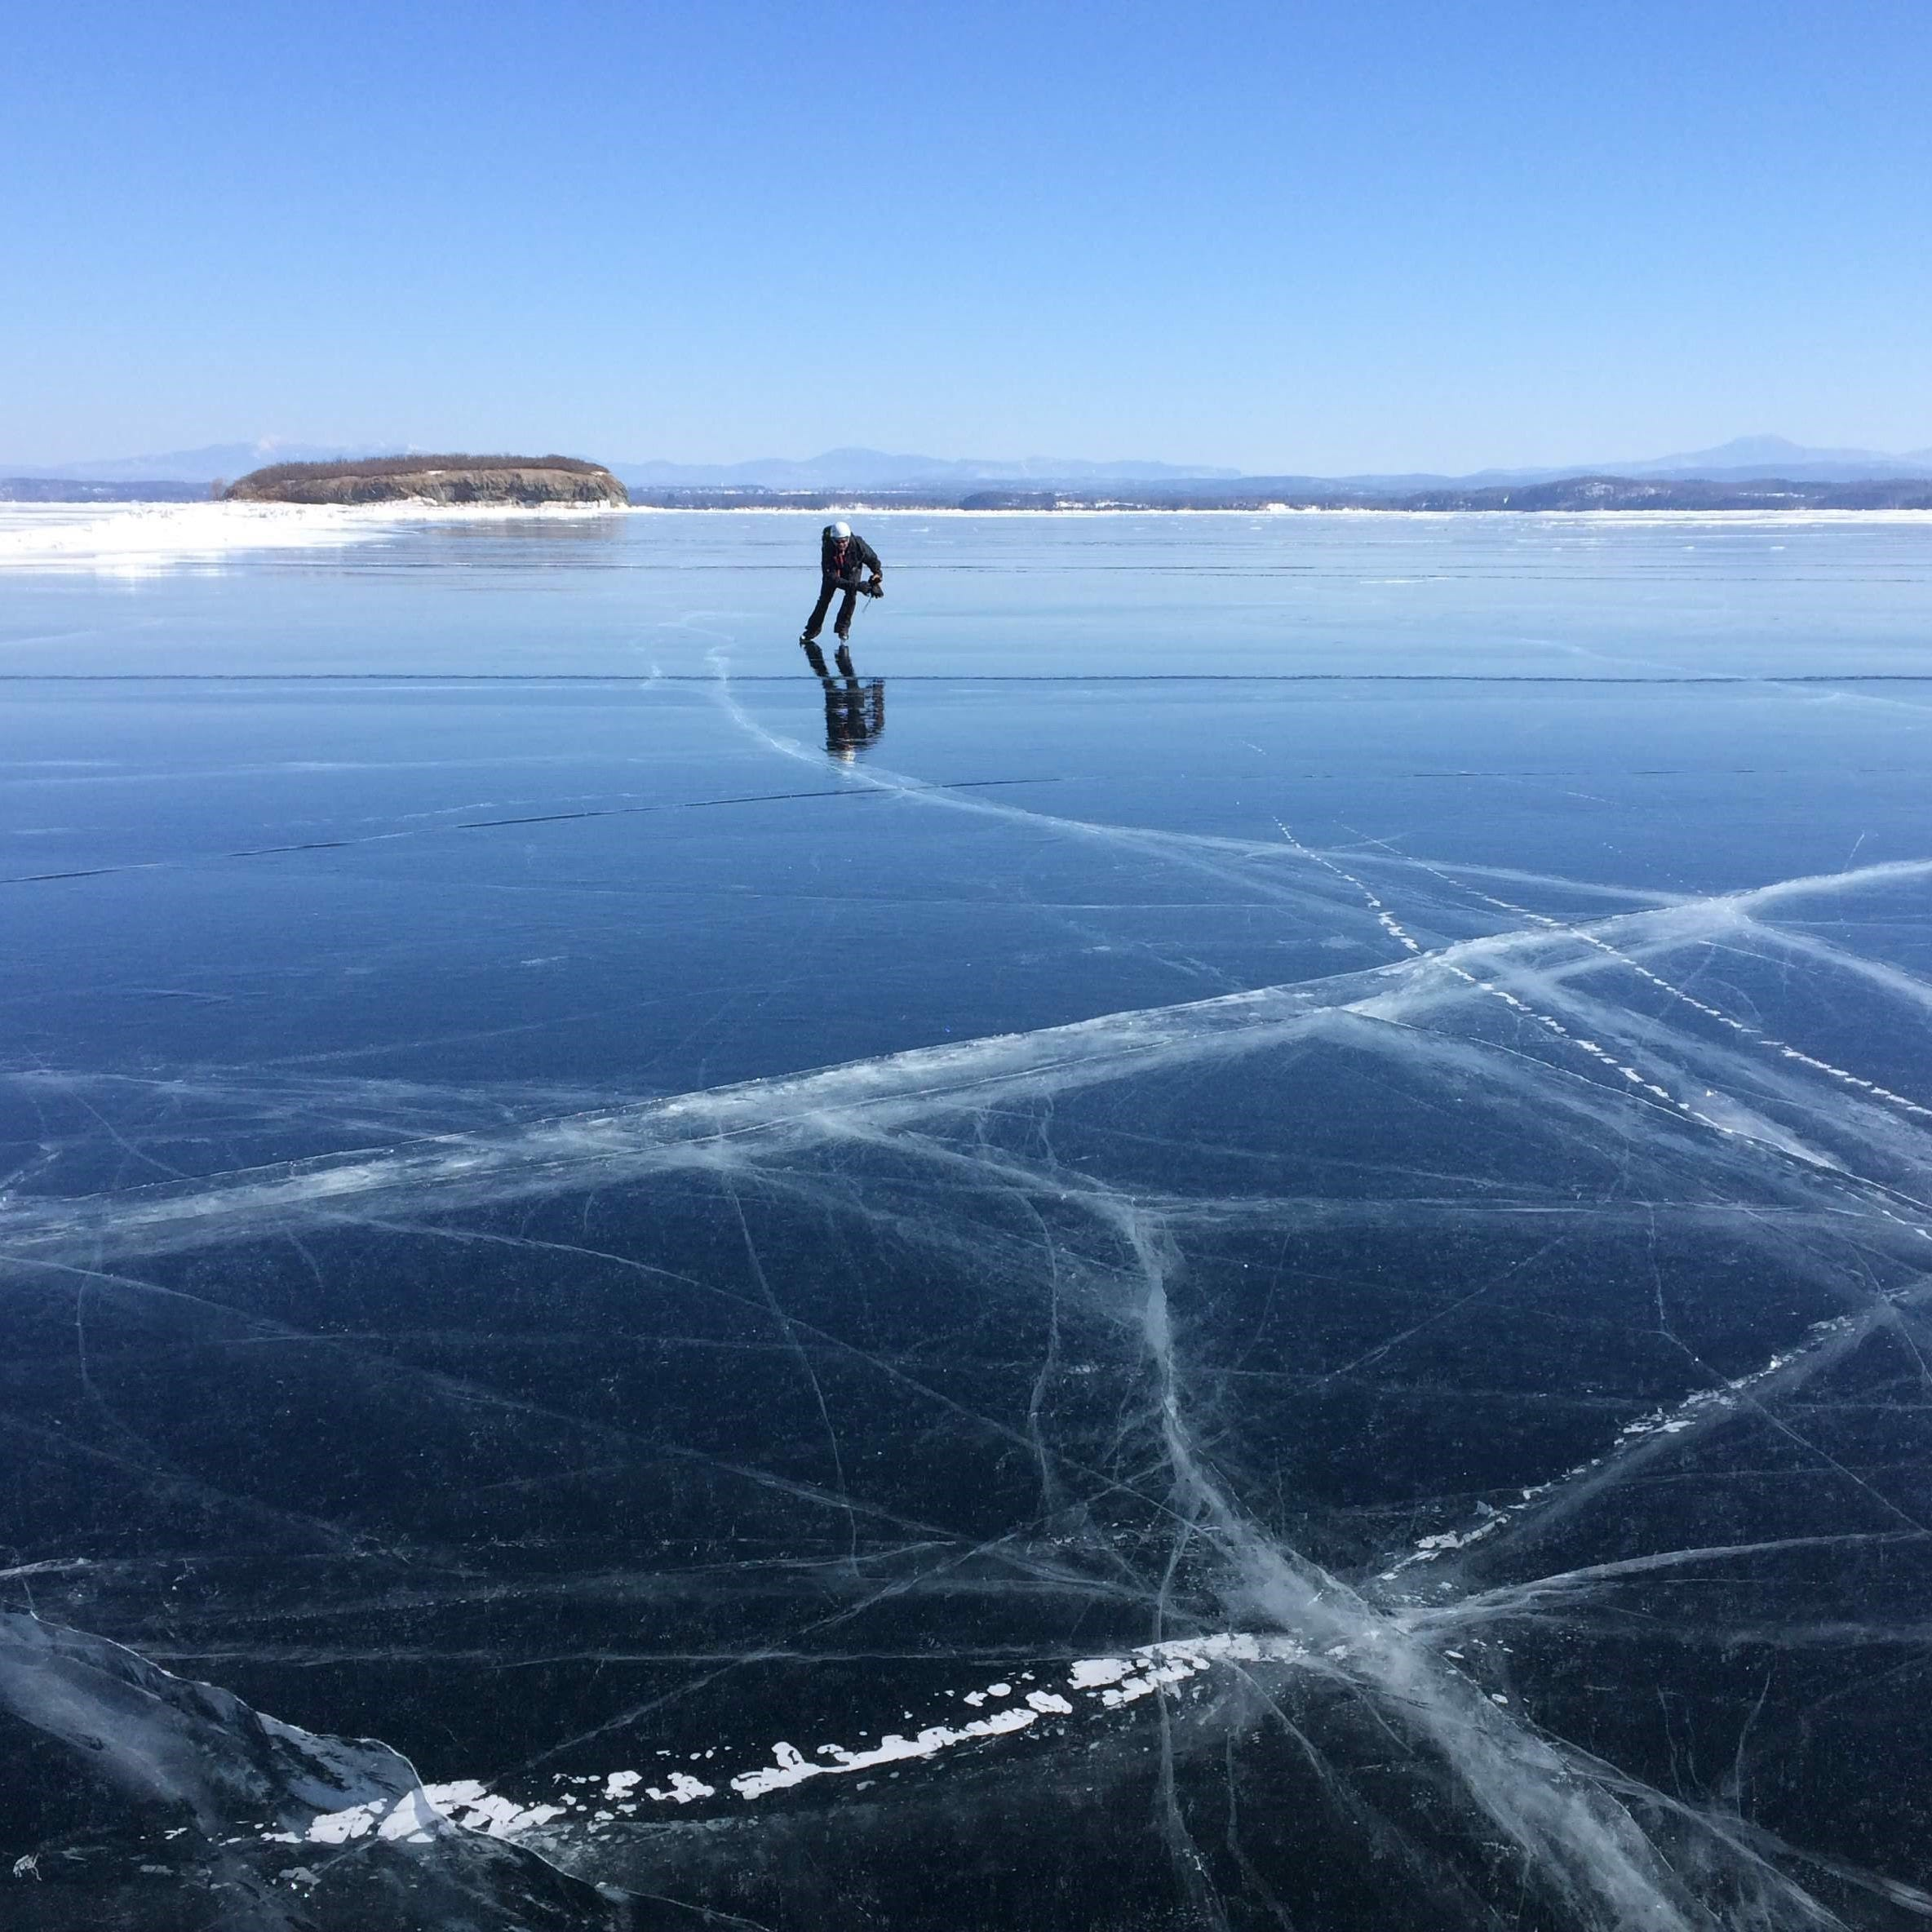 For these people, a frozen Lake Champlain means one giant ice rink